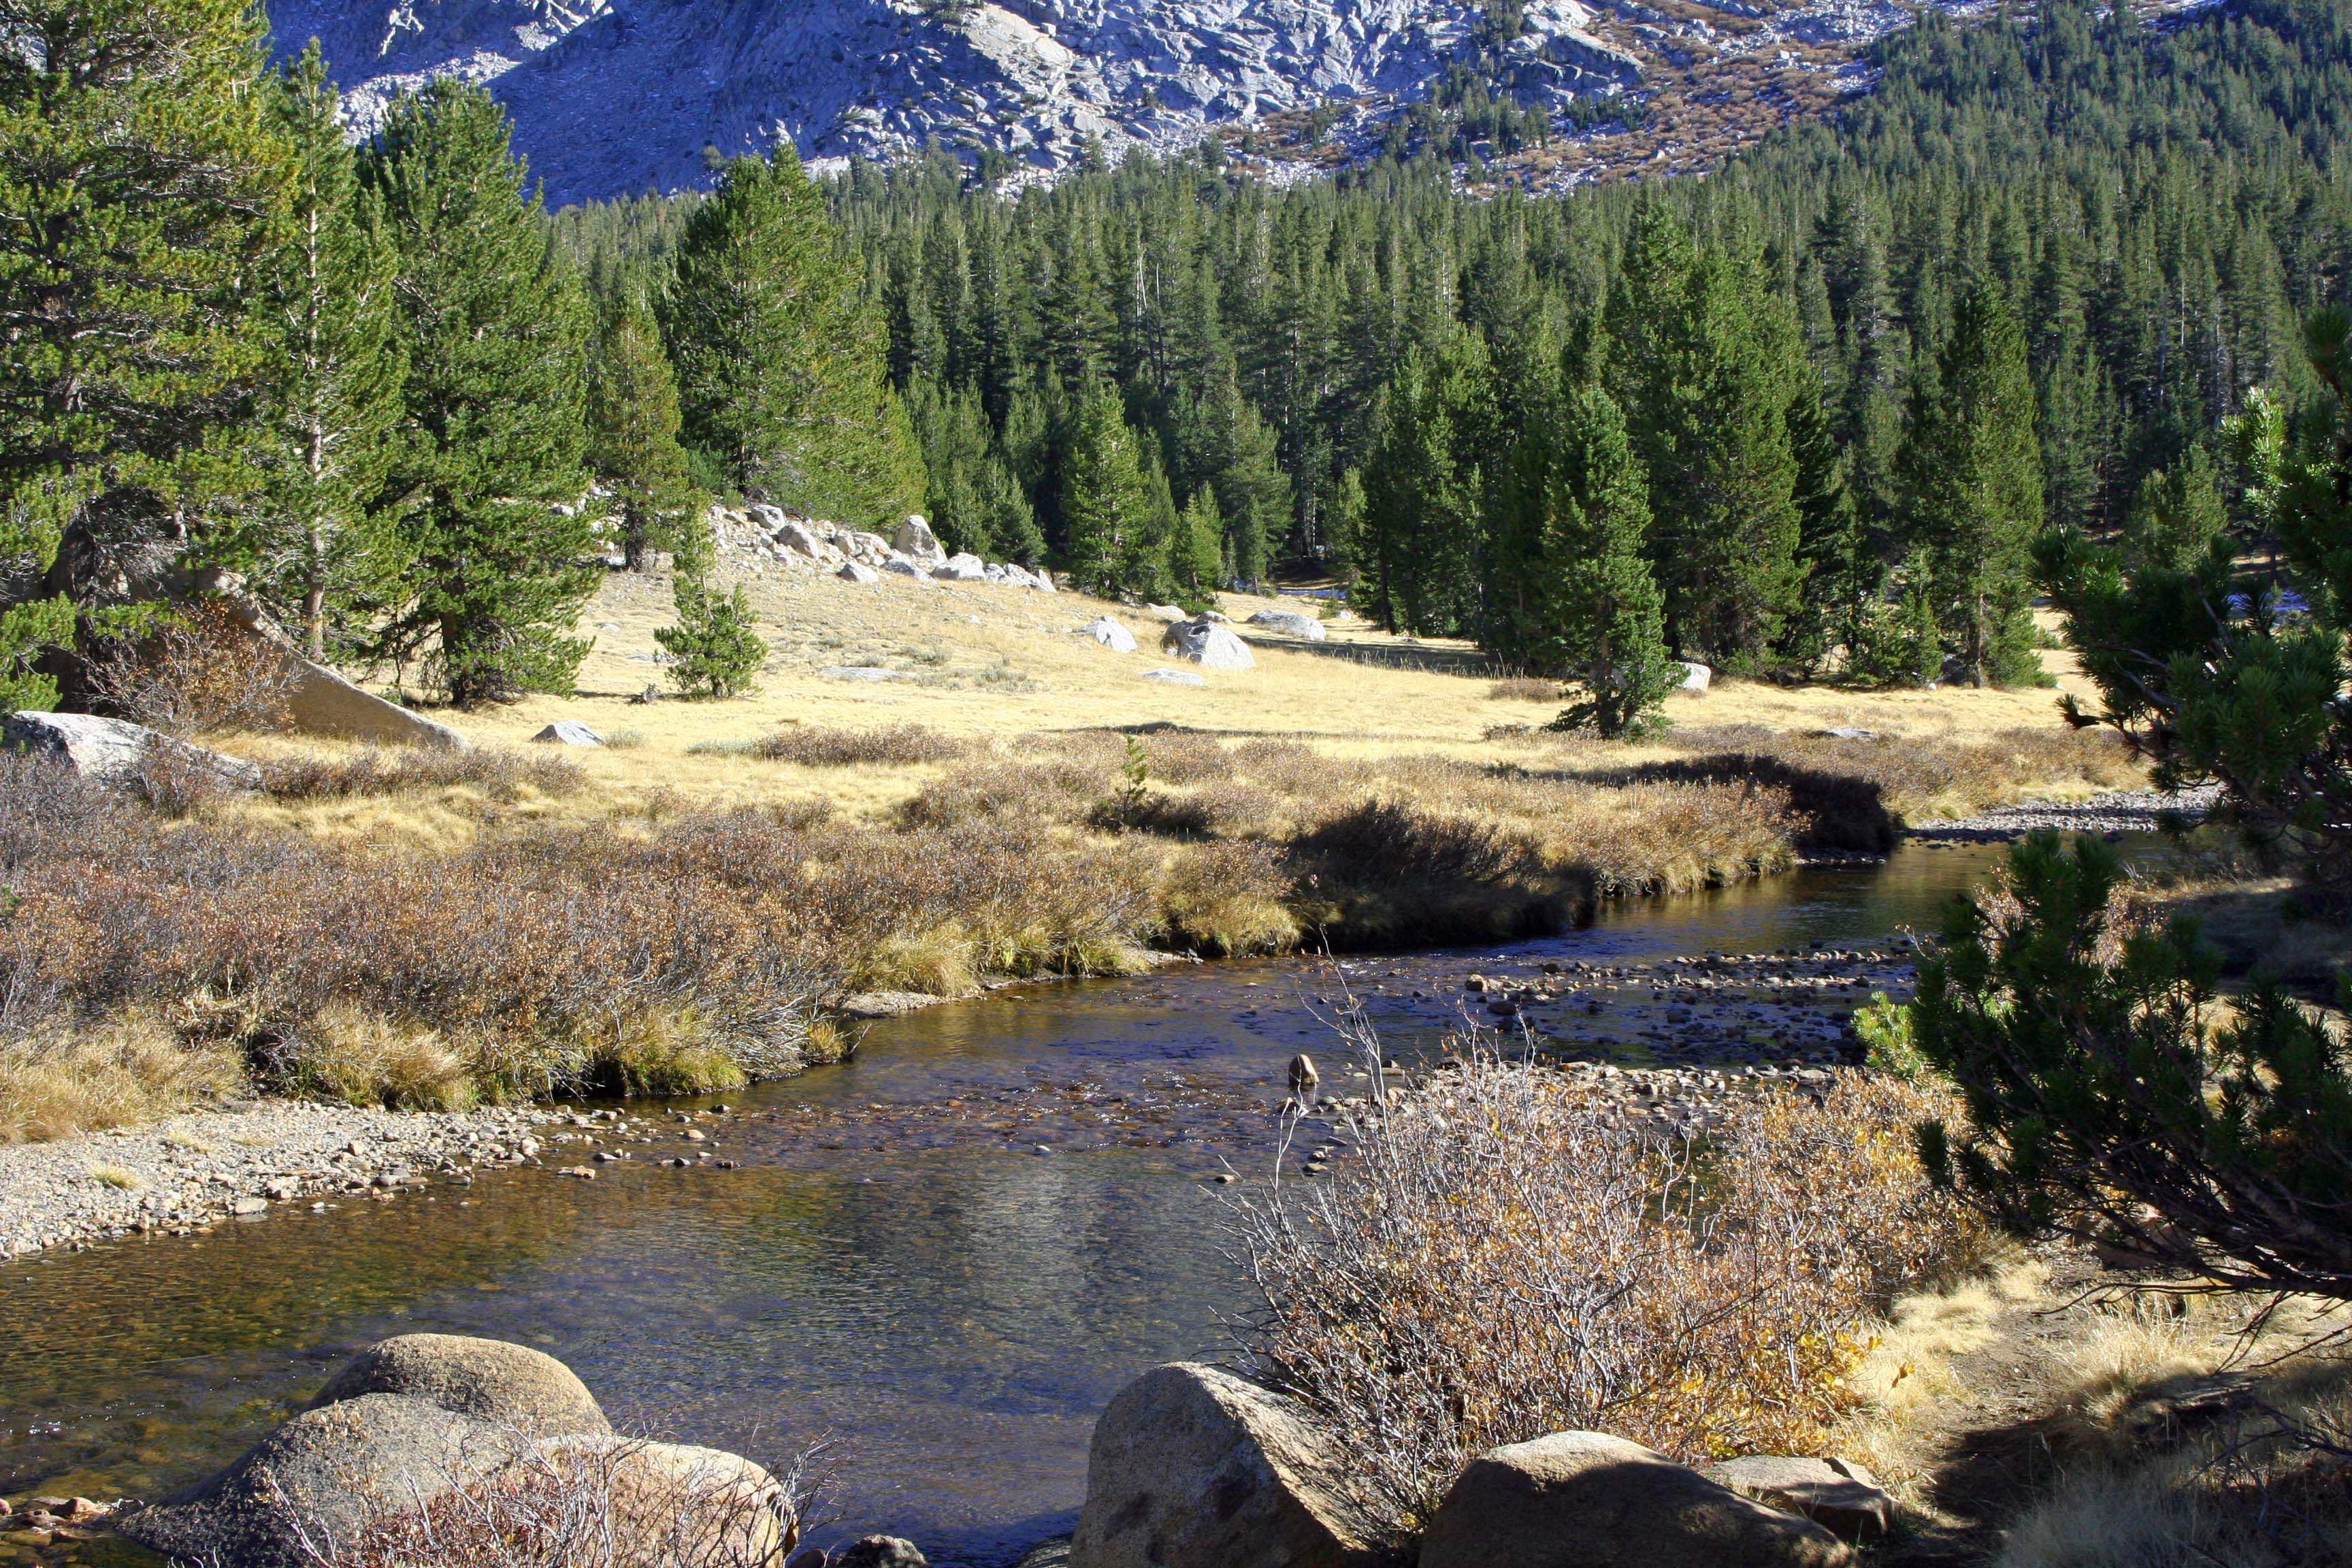 Tuolumne Meadows, Yosemite National Park, California